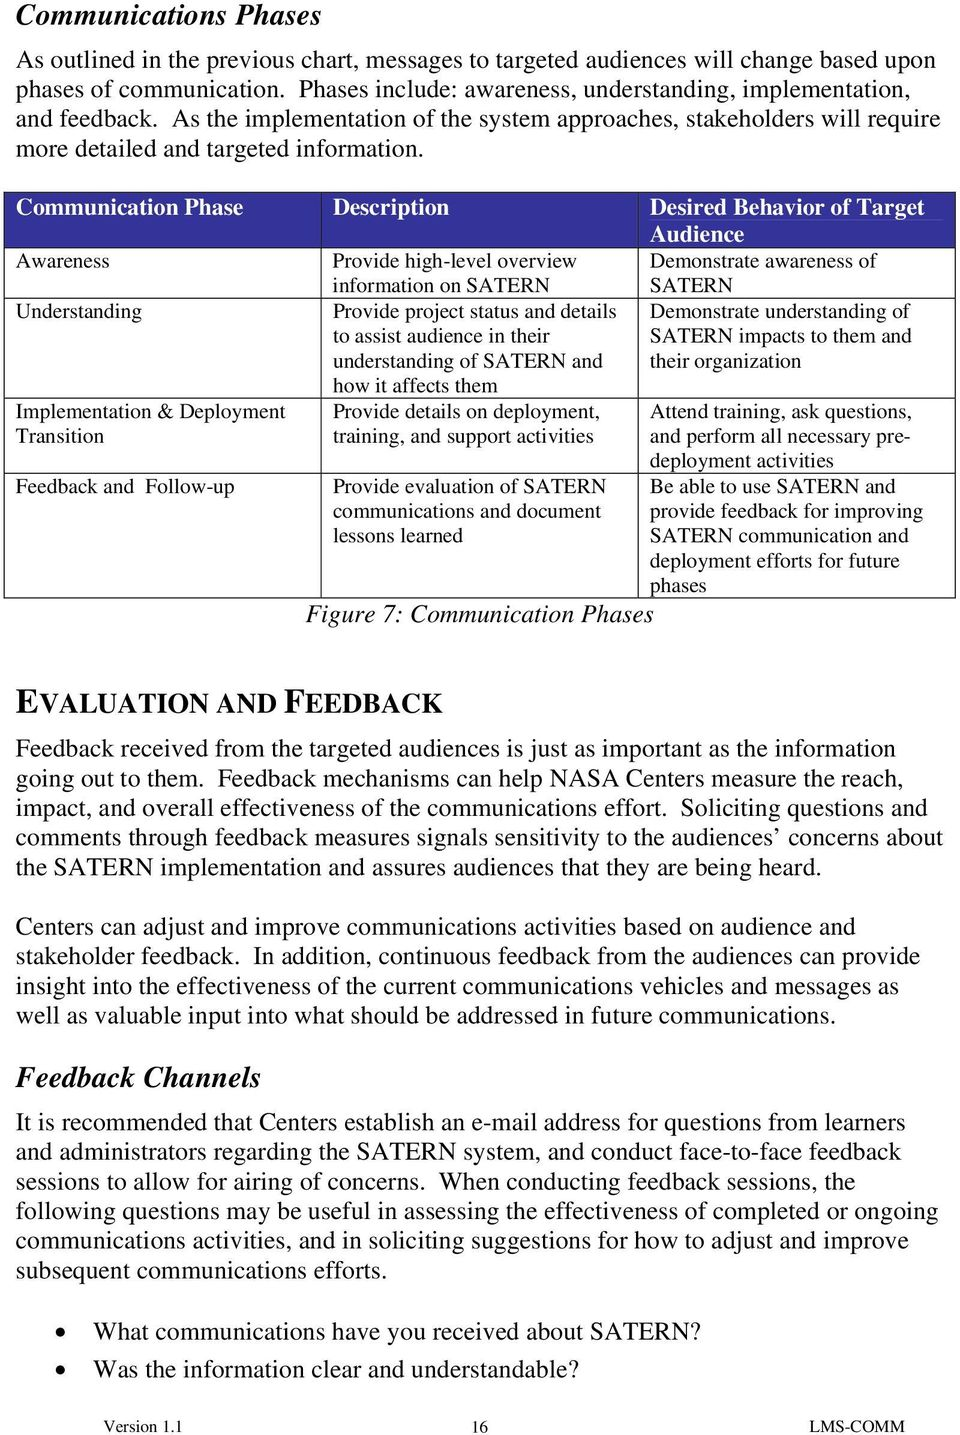 Communication Phase Description Desired Behavior of Target Audience Awareness Provide high-level overview information on SATERN Demonstrate awareness of SATERN Understanding Provide project status